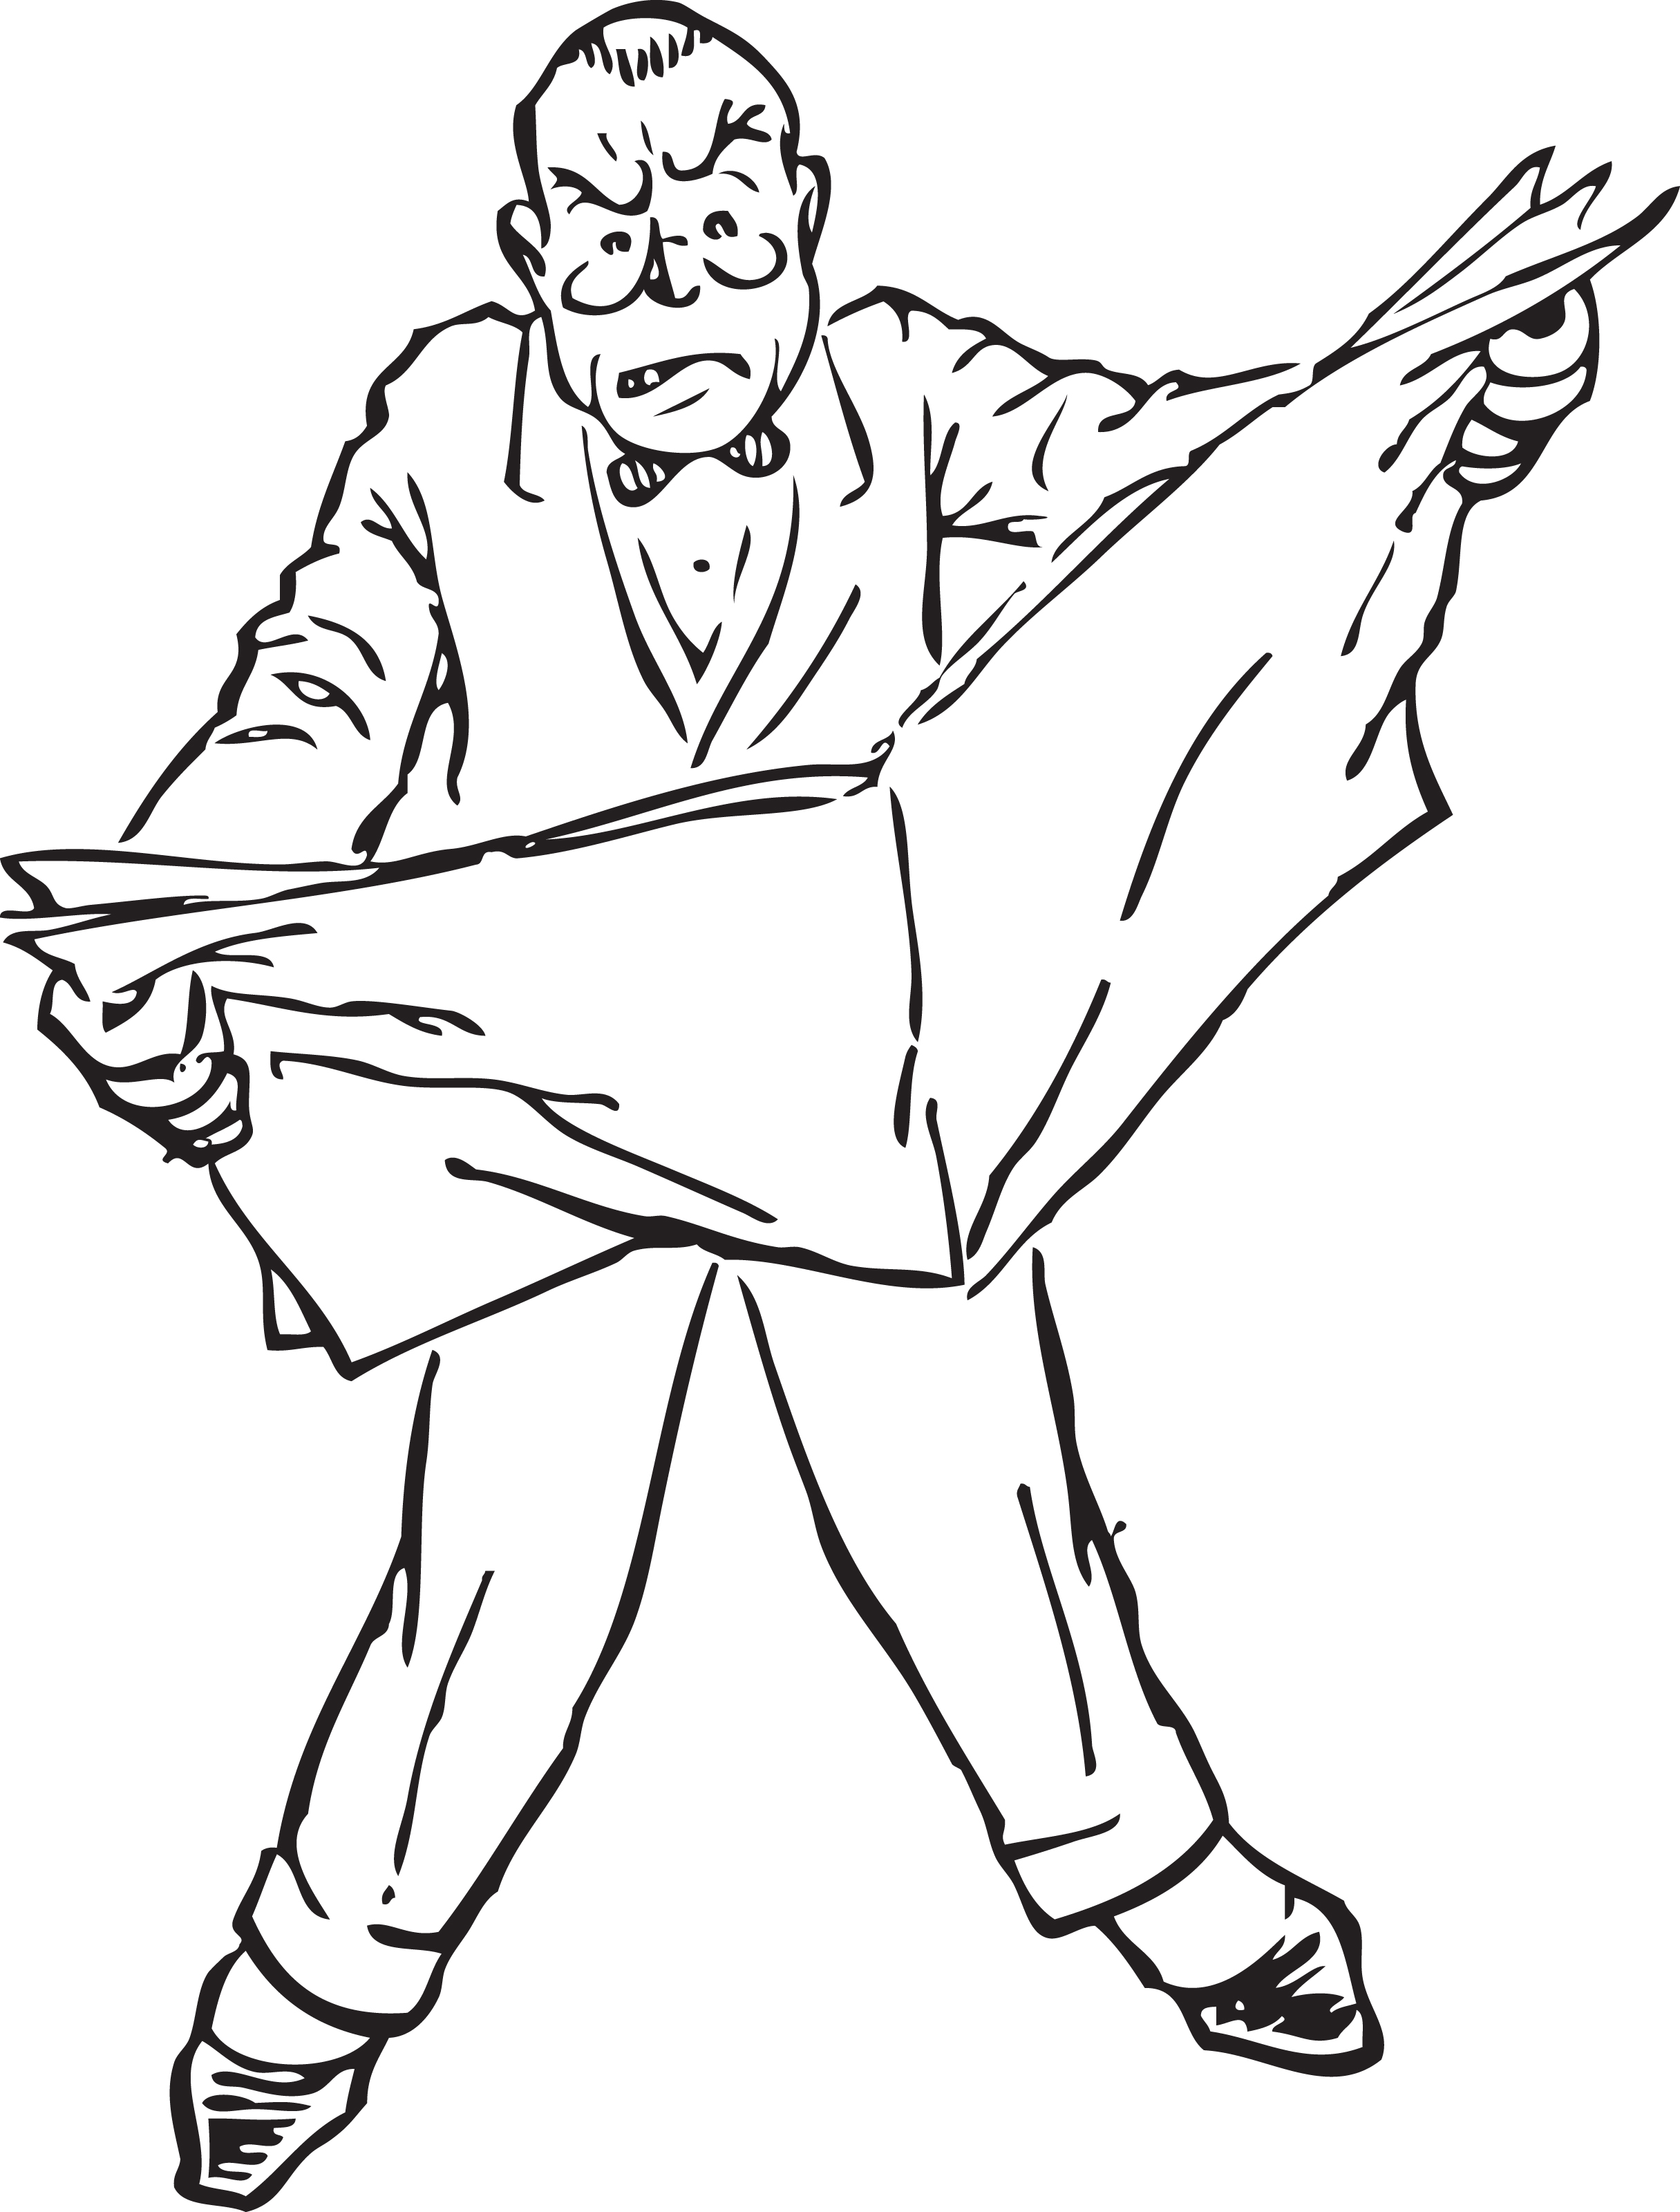 Old Man Reading News Paper Clipart